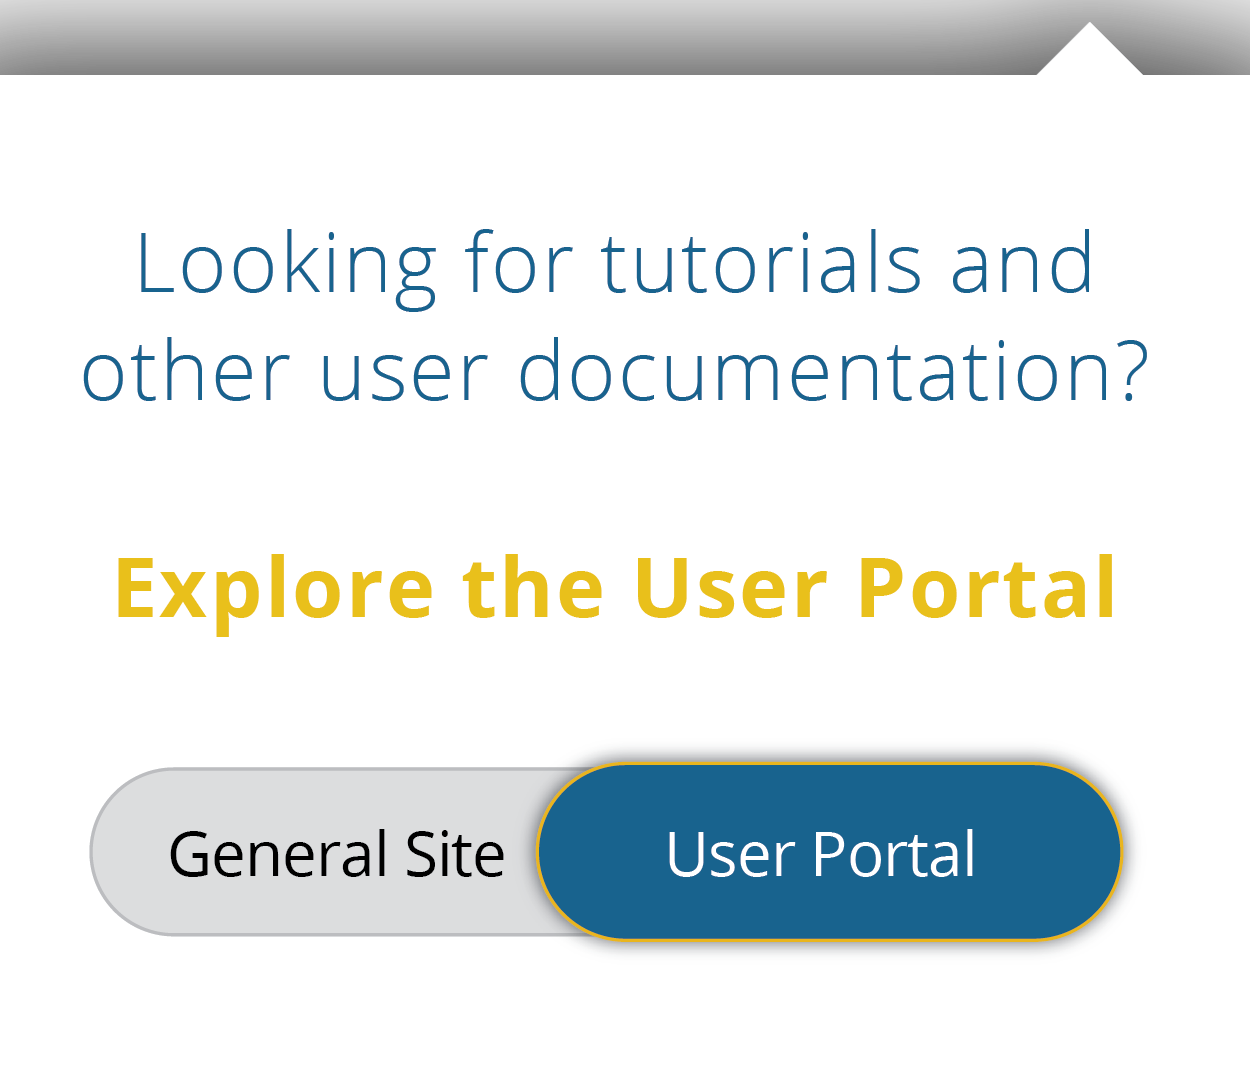 image instructs people who are looking for User Documentation to click on the